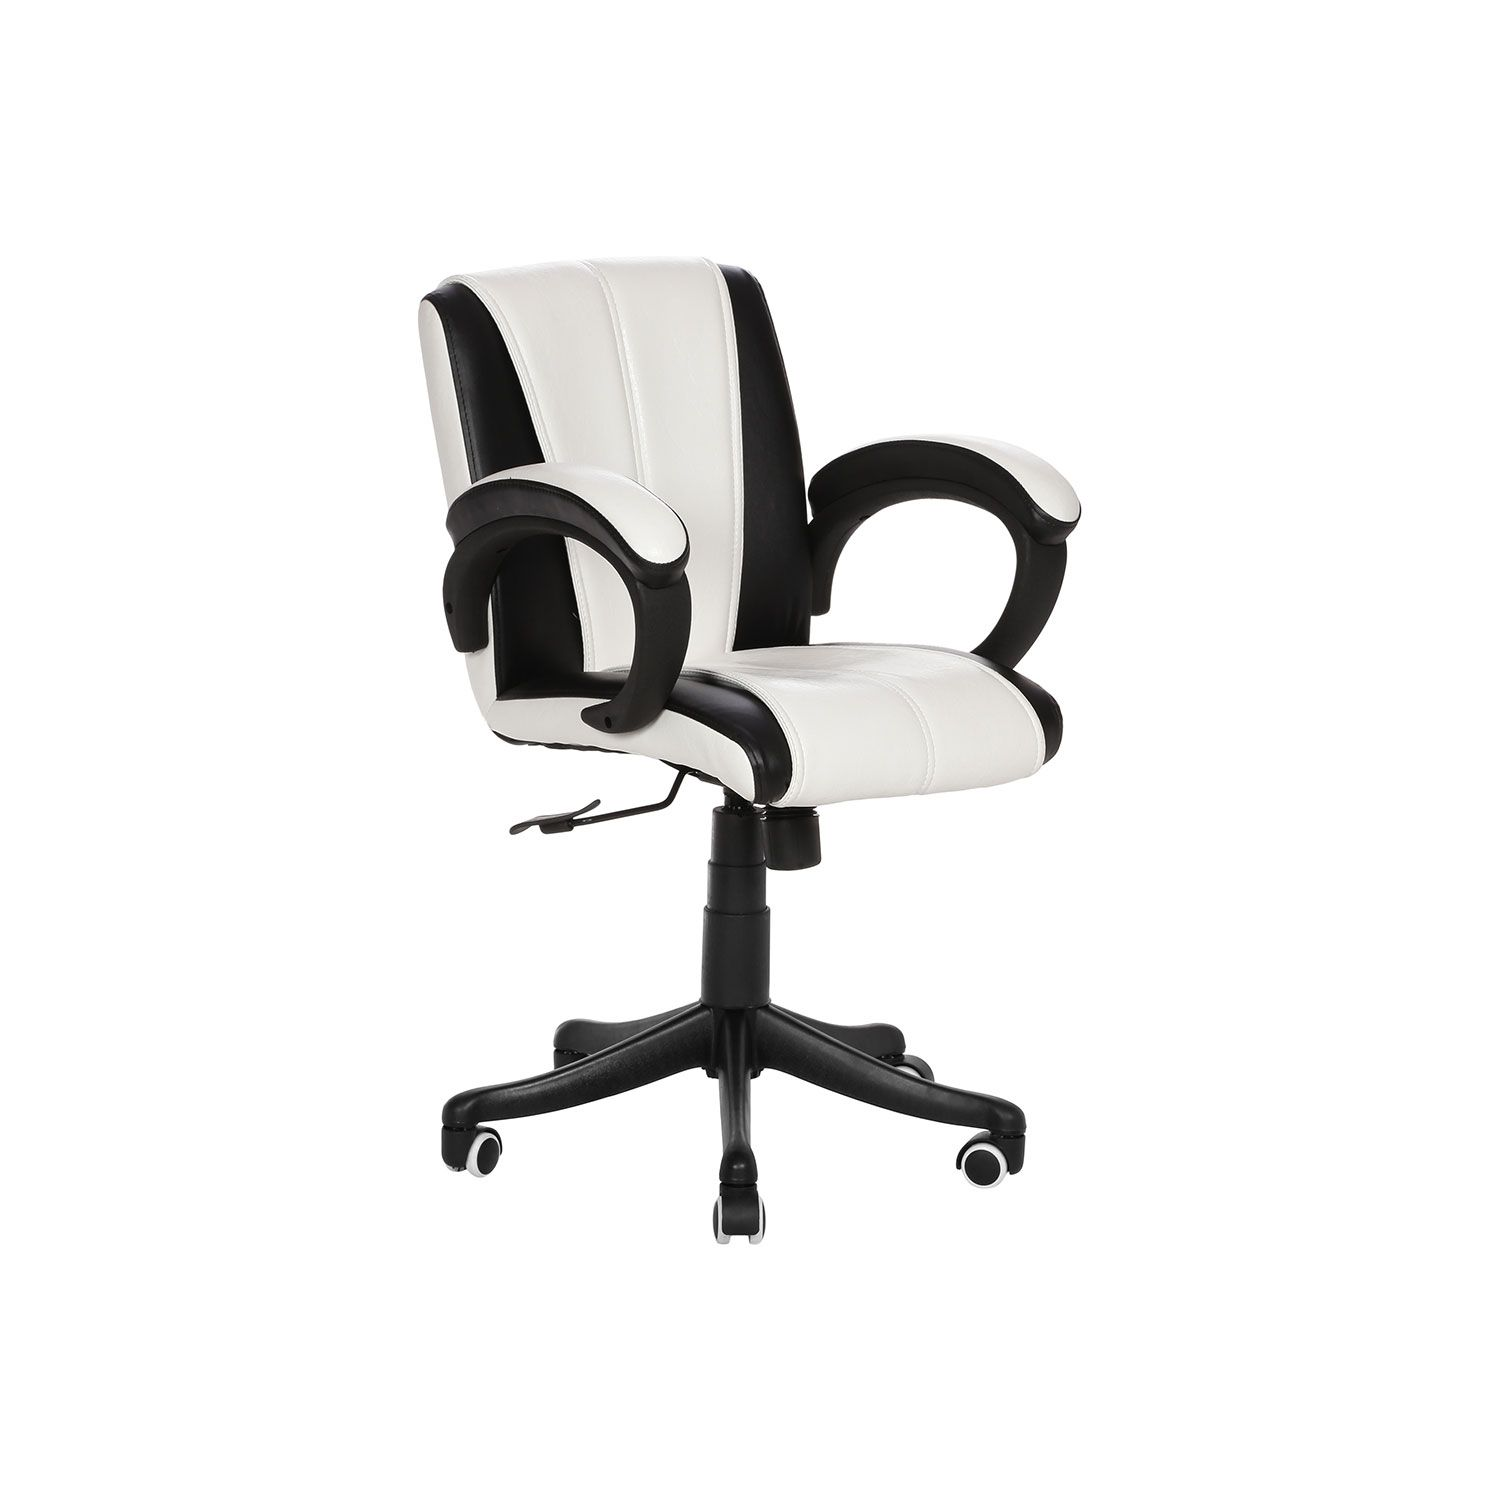 the blanegro lb workstation chair black and white office furniture